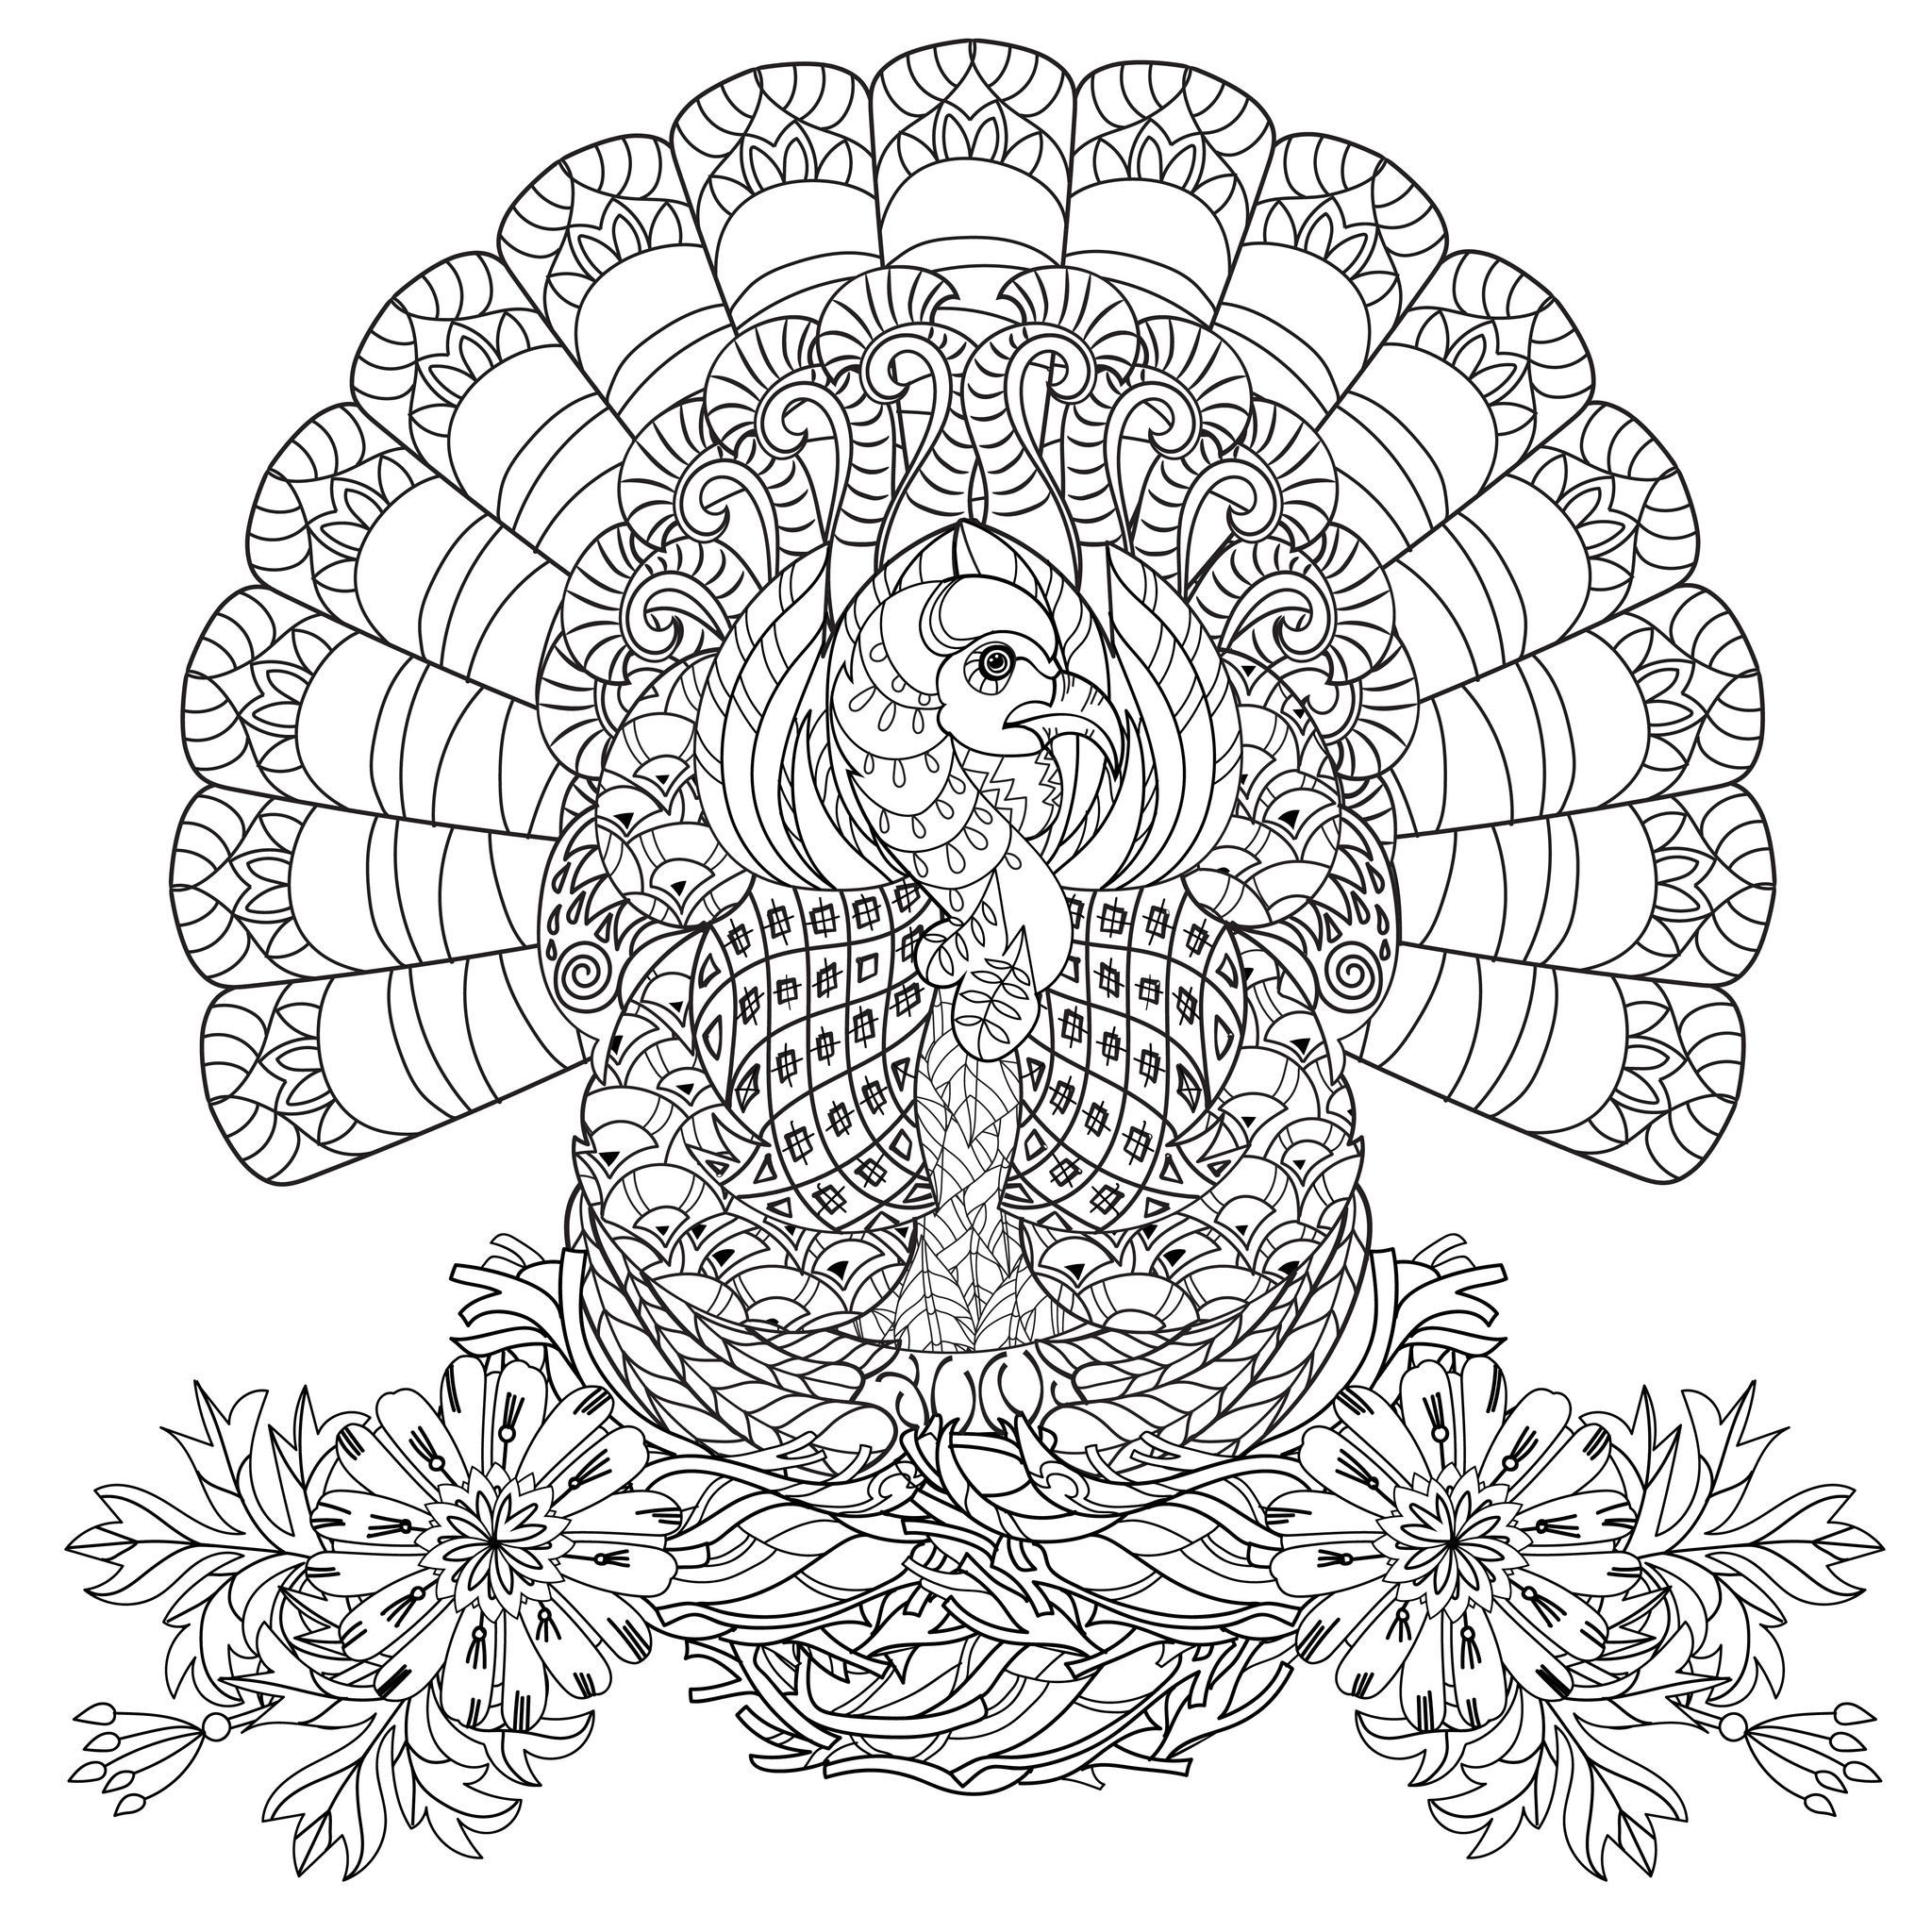 Thanksgiving Coloring Pages For Adults  Coloring Home